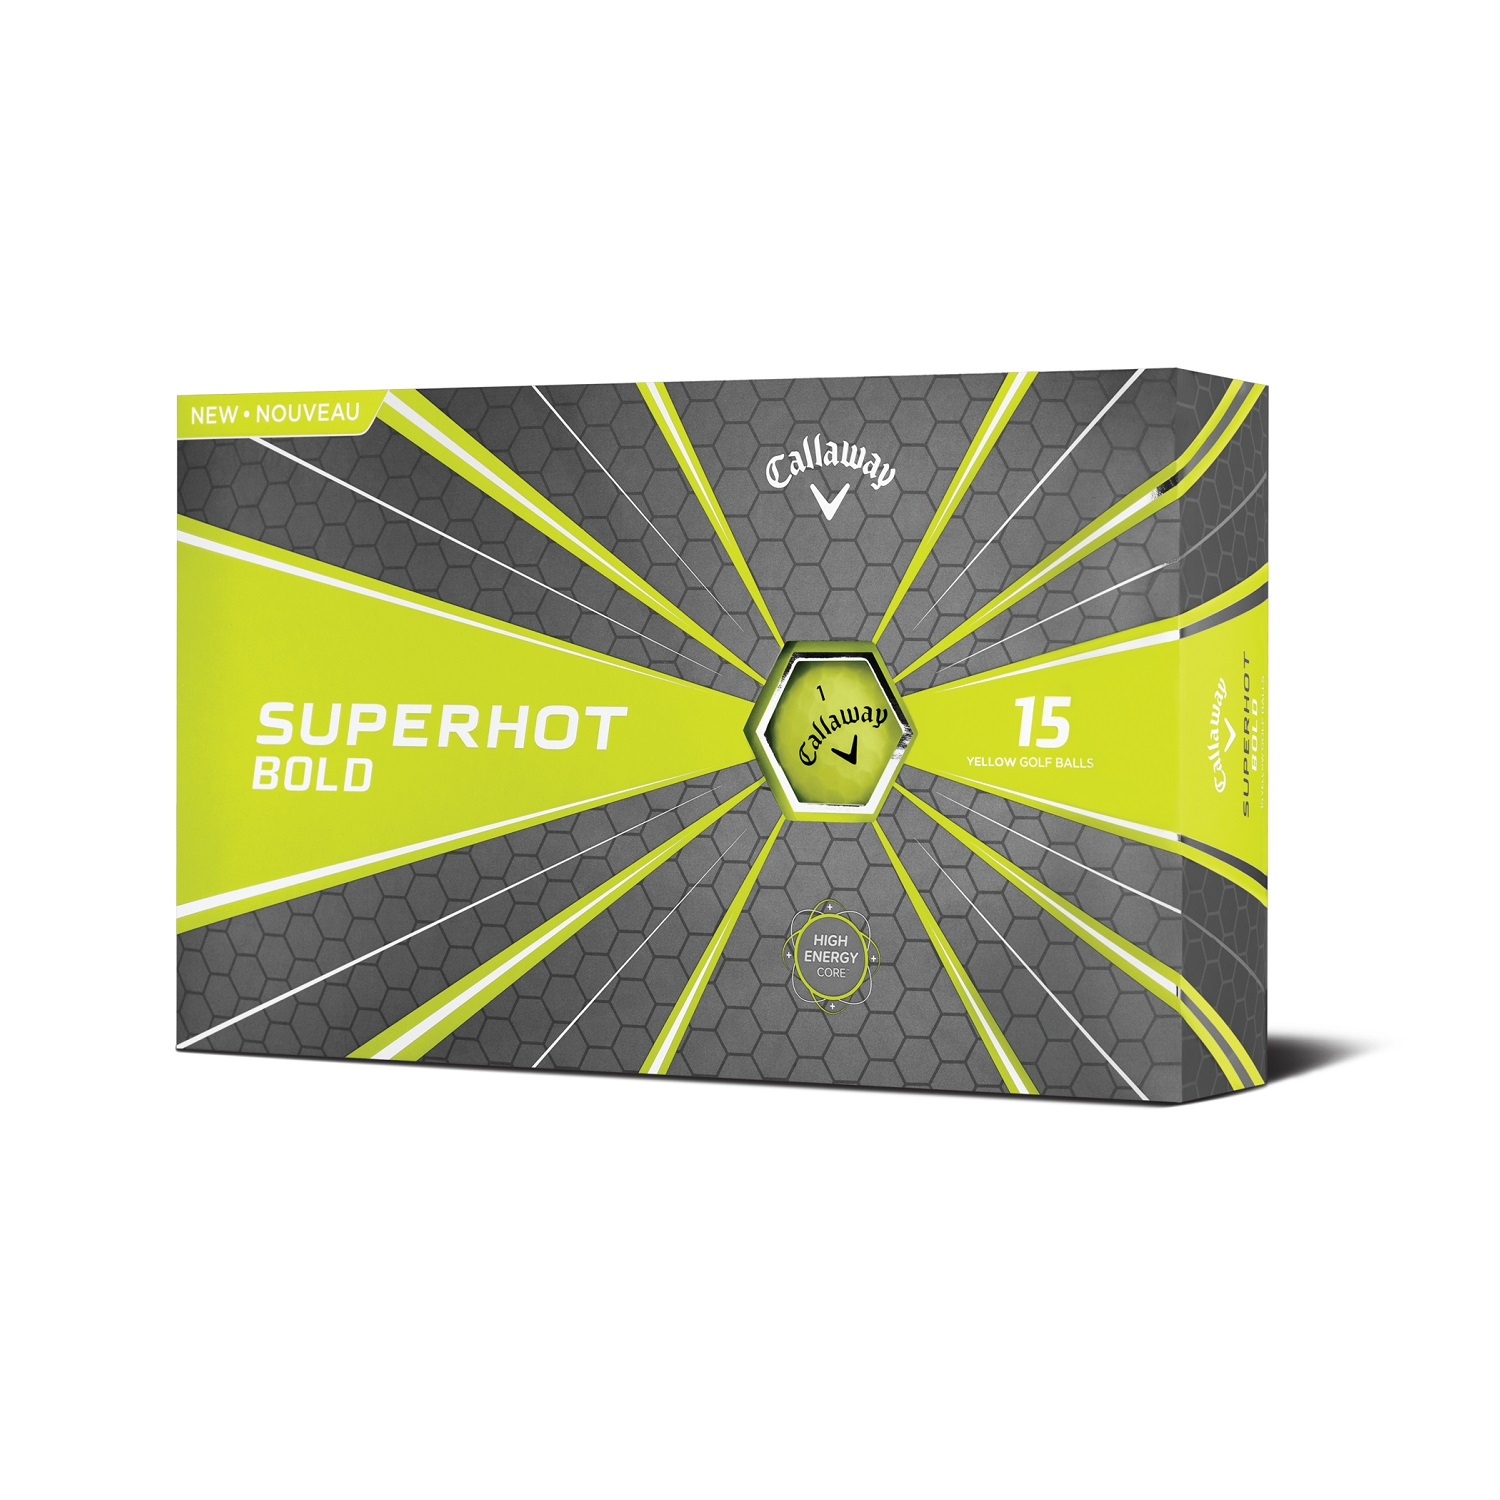 Callaway Superhot 18 Golf Balls - 15 Pack Bold Yellow